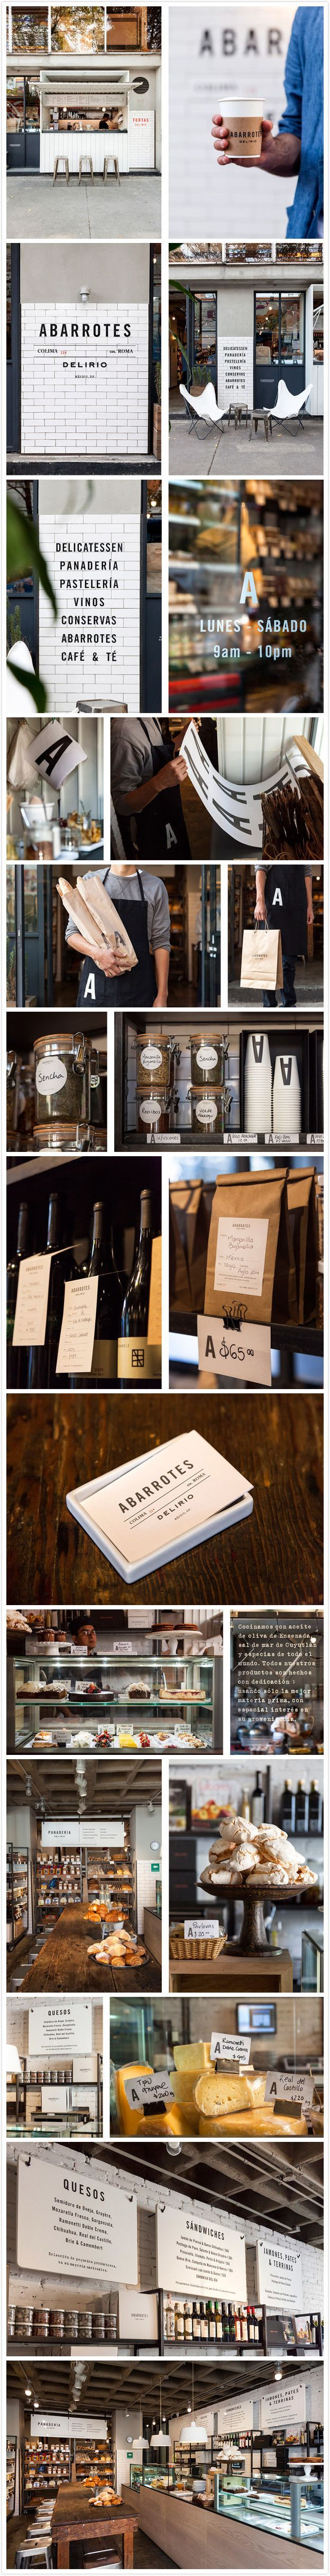 branding, the whole package: abarrotes